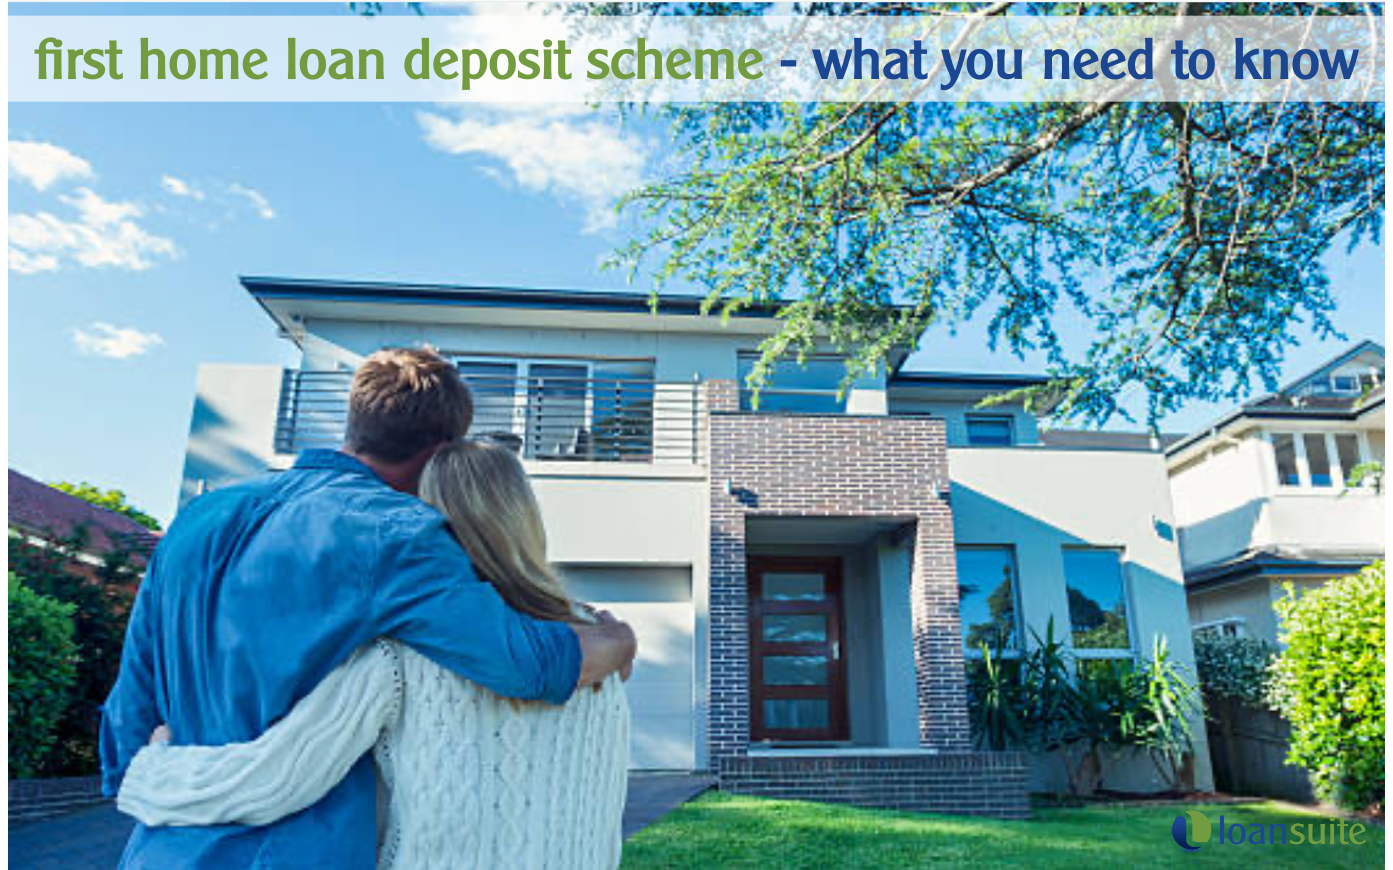 First Home Loan Deposit Scheme - What You Need to Know - Loansuite - Mortgage Brokers for Australian Expats